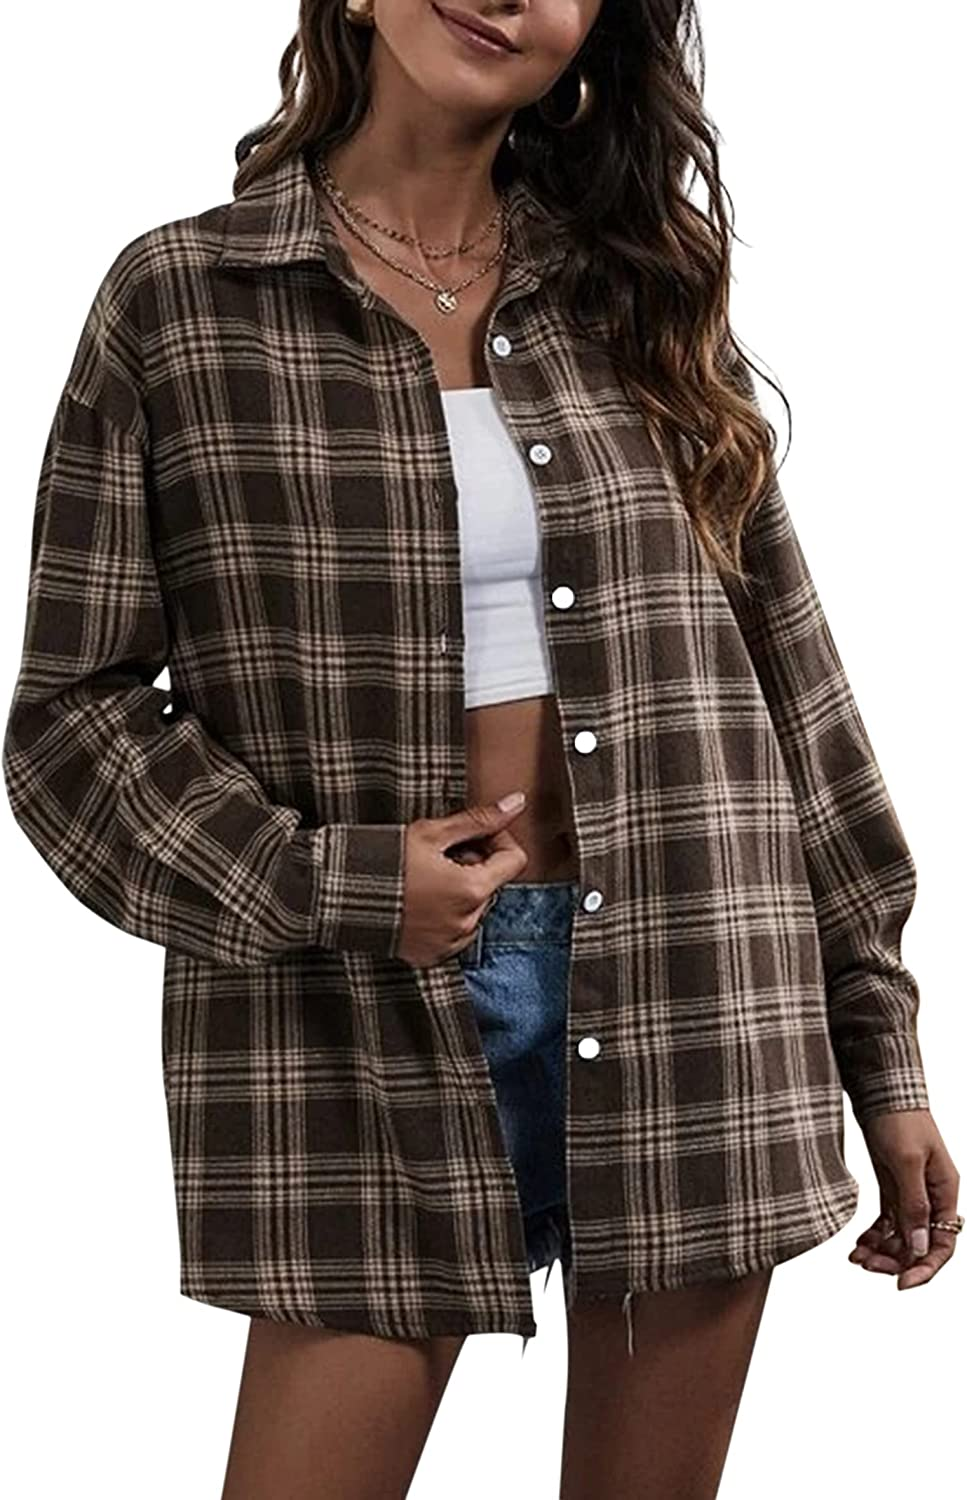 Meladyan Oversized Plaid Button Down Shirts for Women Long Sleeve Collar Loose Blouse Jacket Top Casual Workout Outfits